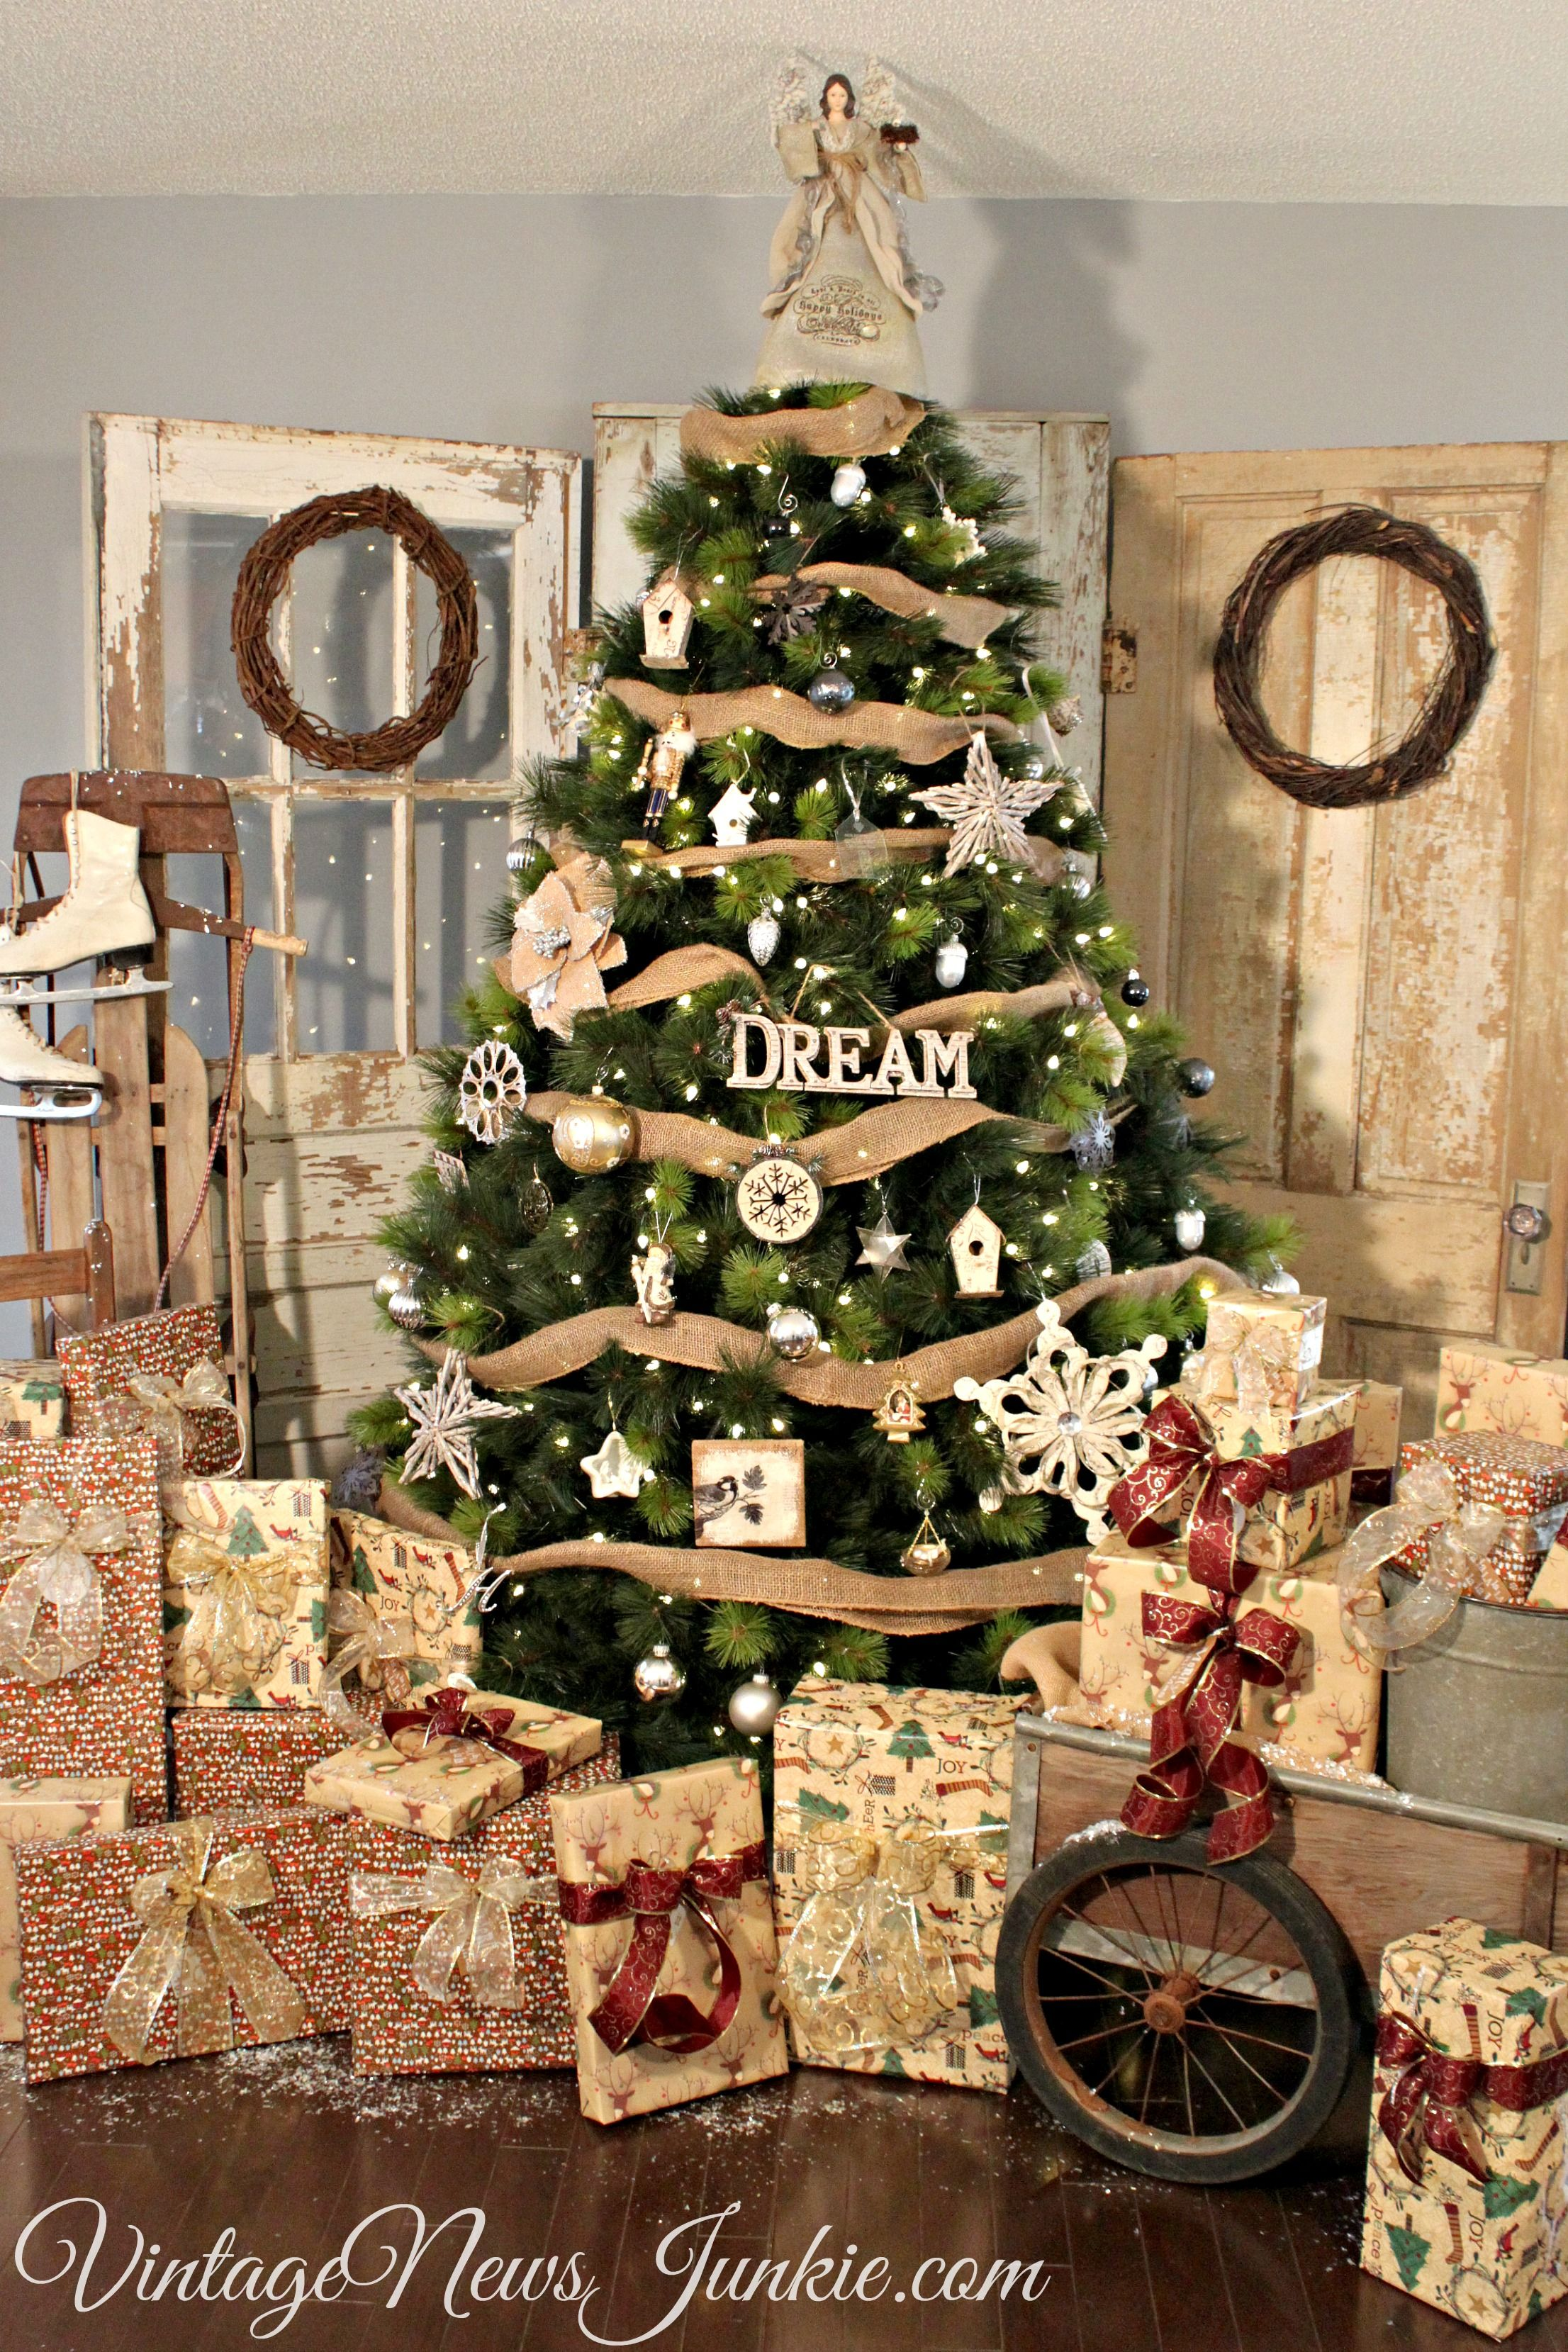 distressedrustic doors with wreaths in the corner behind the christmas tree vintage rustic christmas tree decor